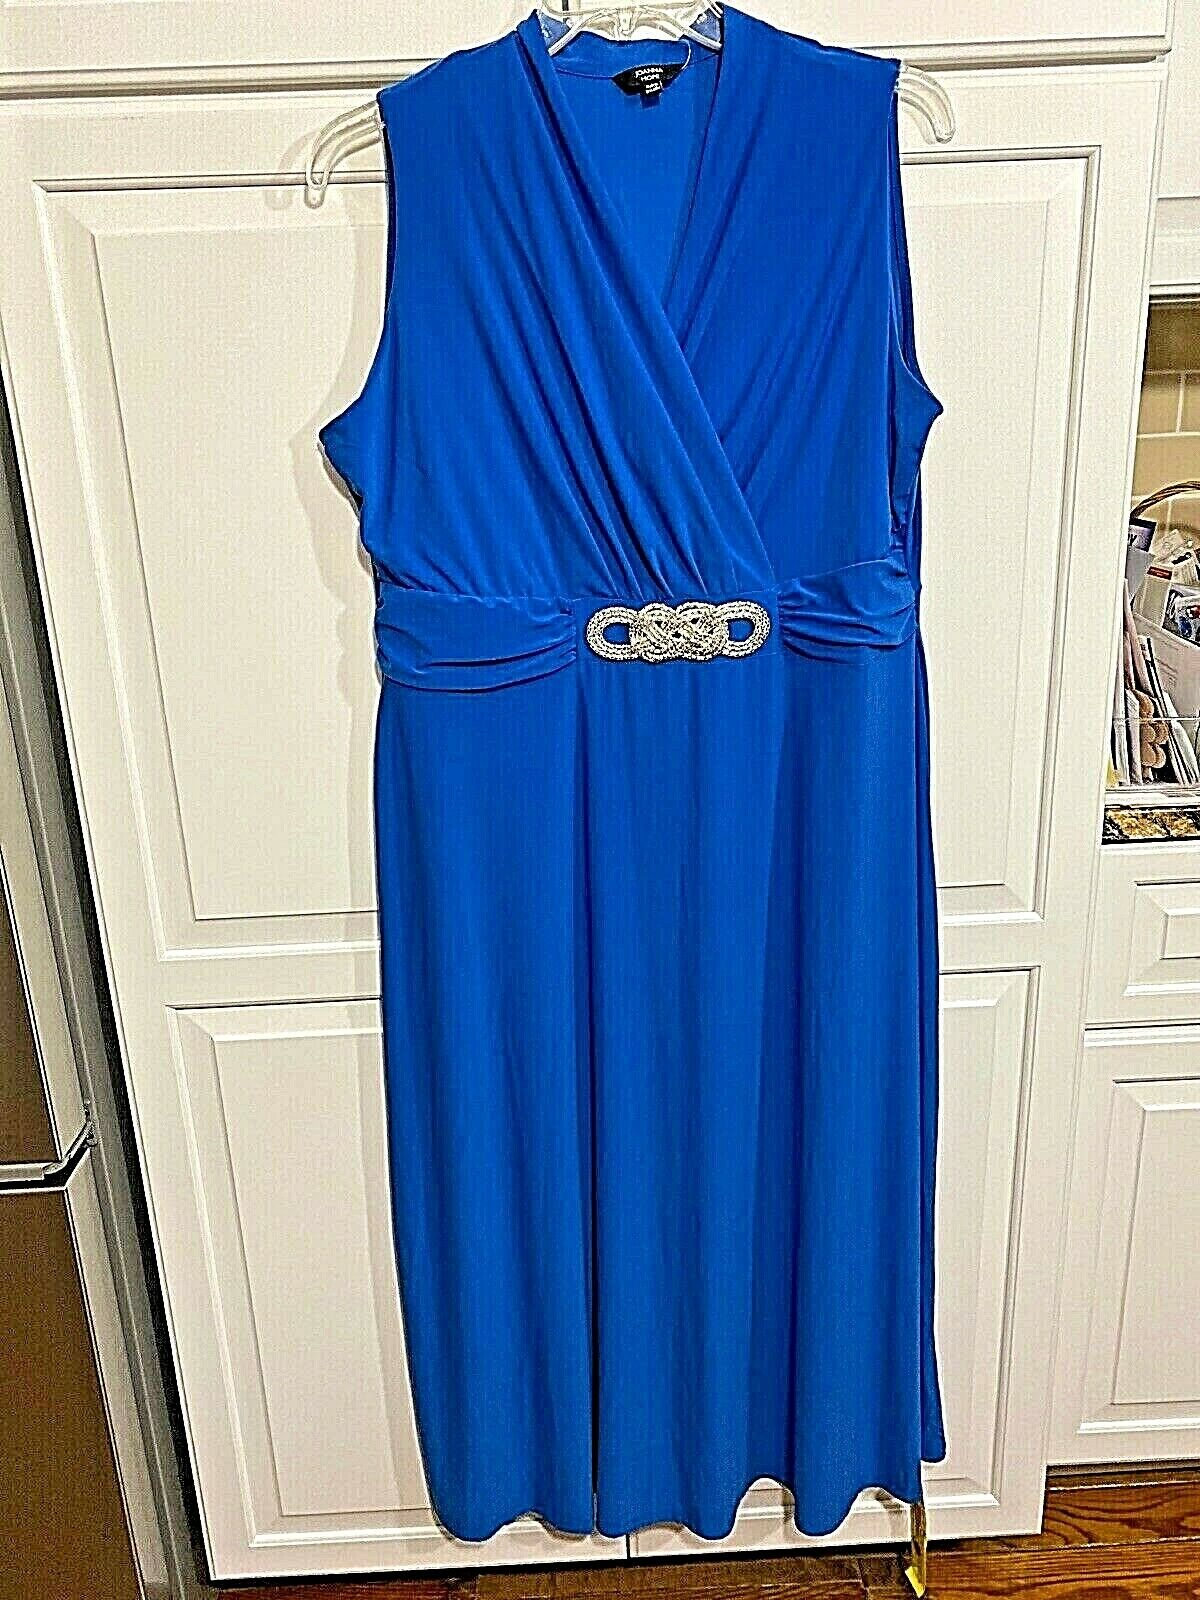 Joanna Hope blue maxi length special occasion dress w bling at waist, size 18